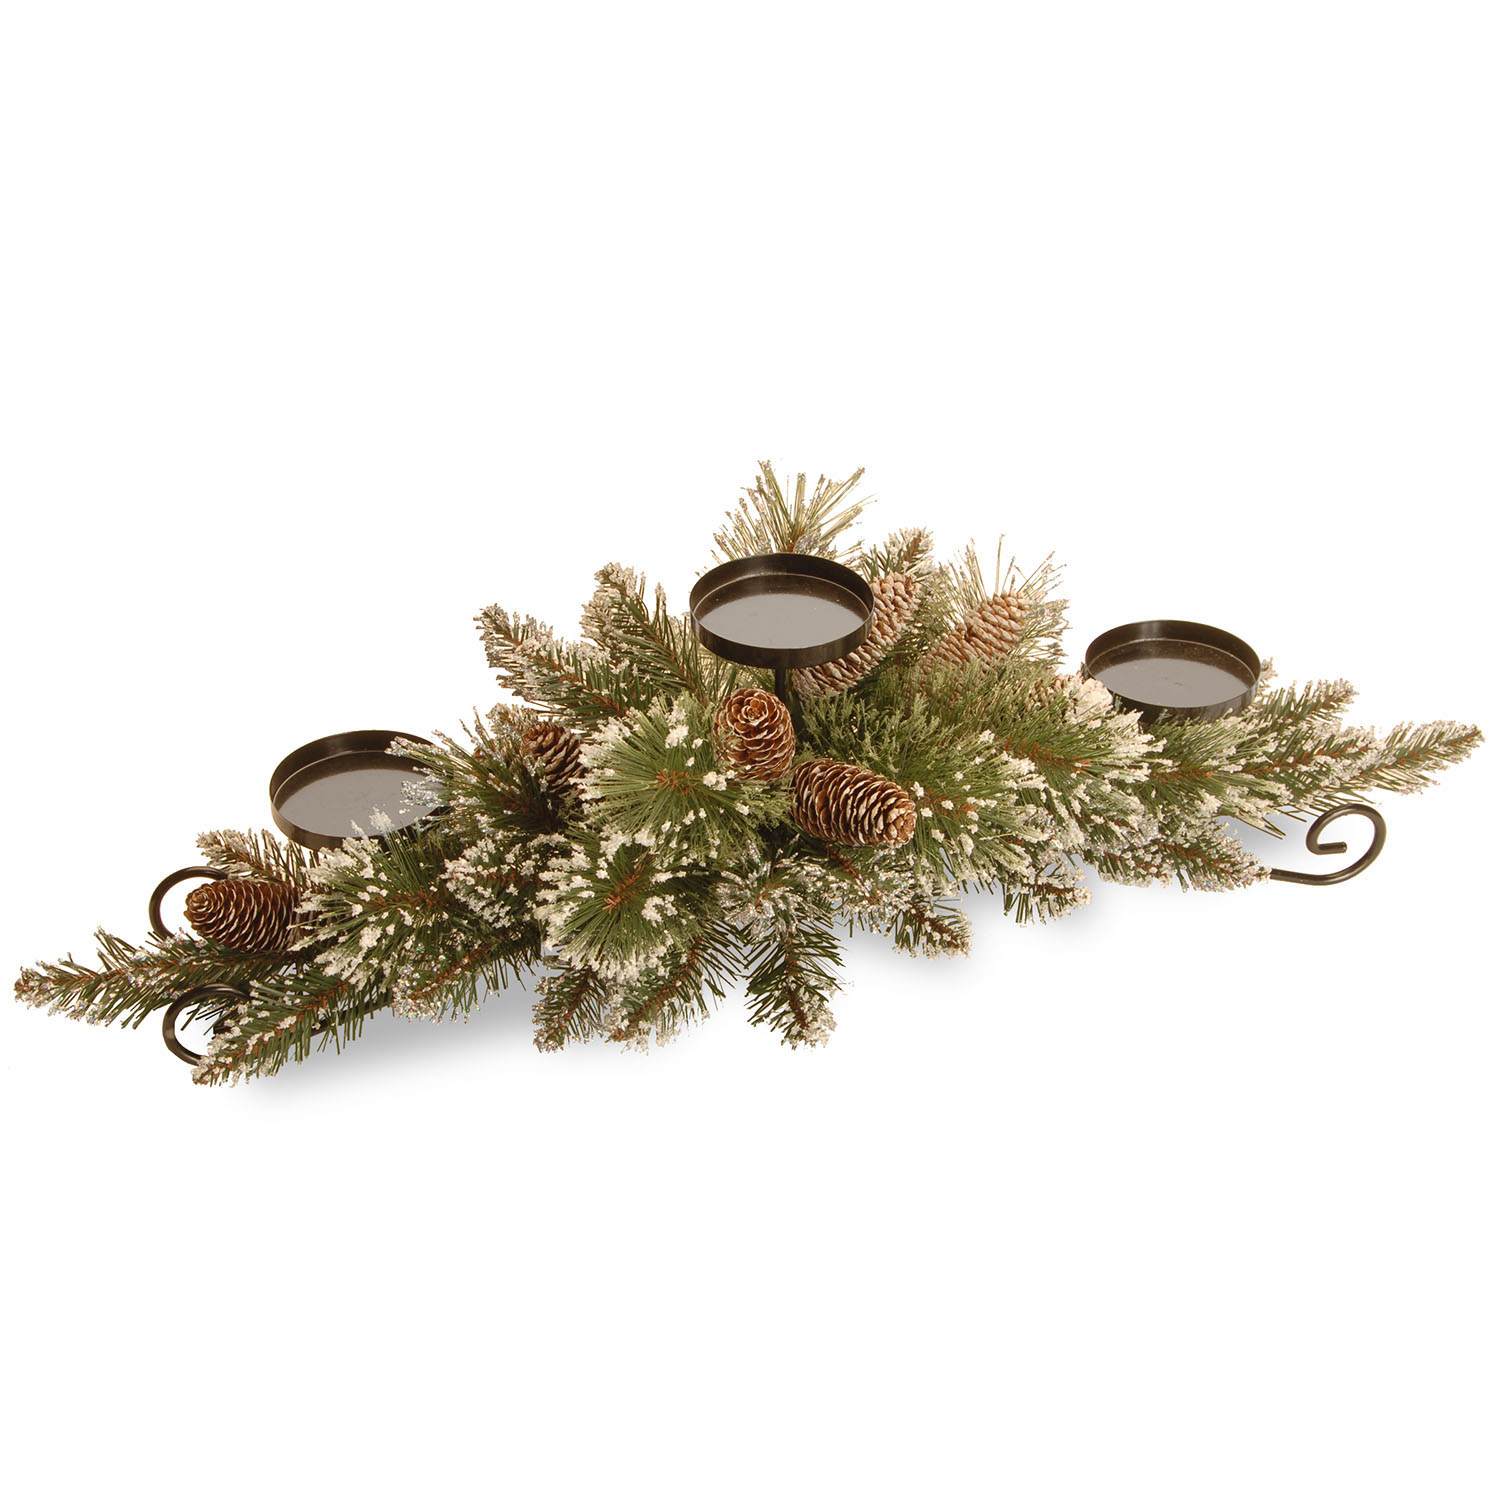 30 inch Glittery Bristle Pine Centerpiece: 3 Candle Holders & Cones GB3-810-30C-B